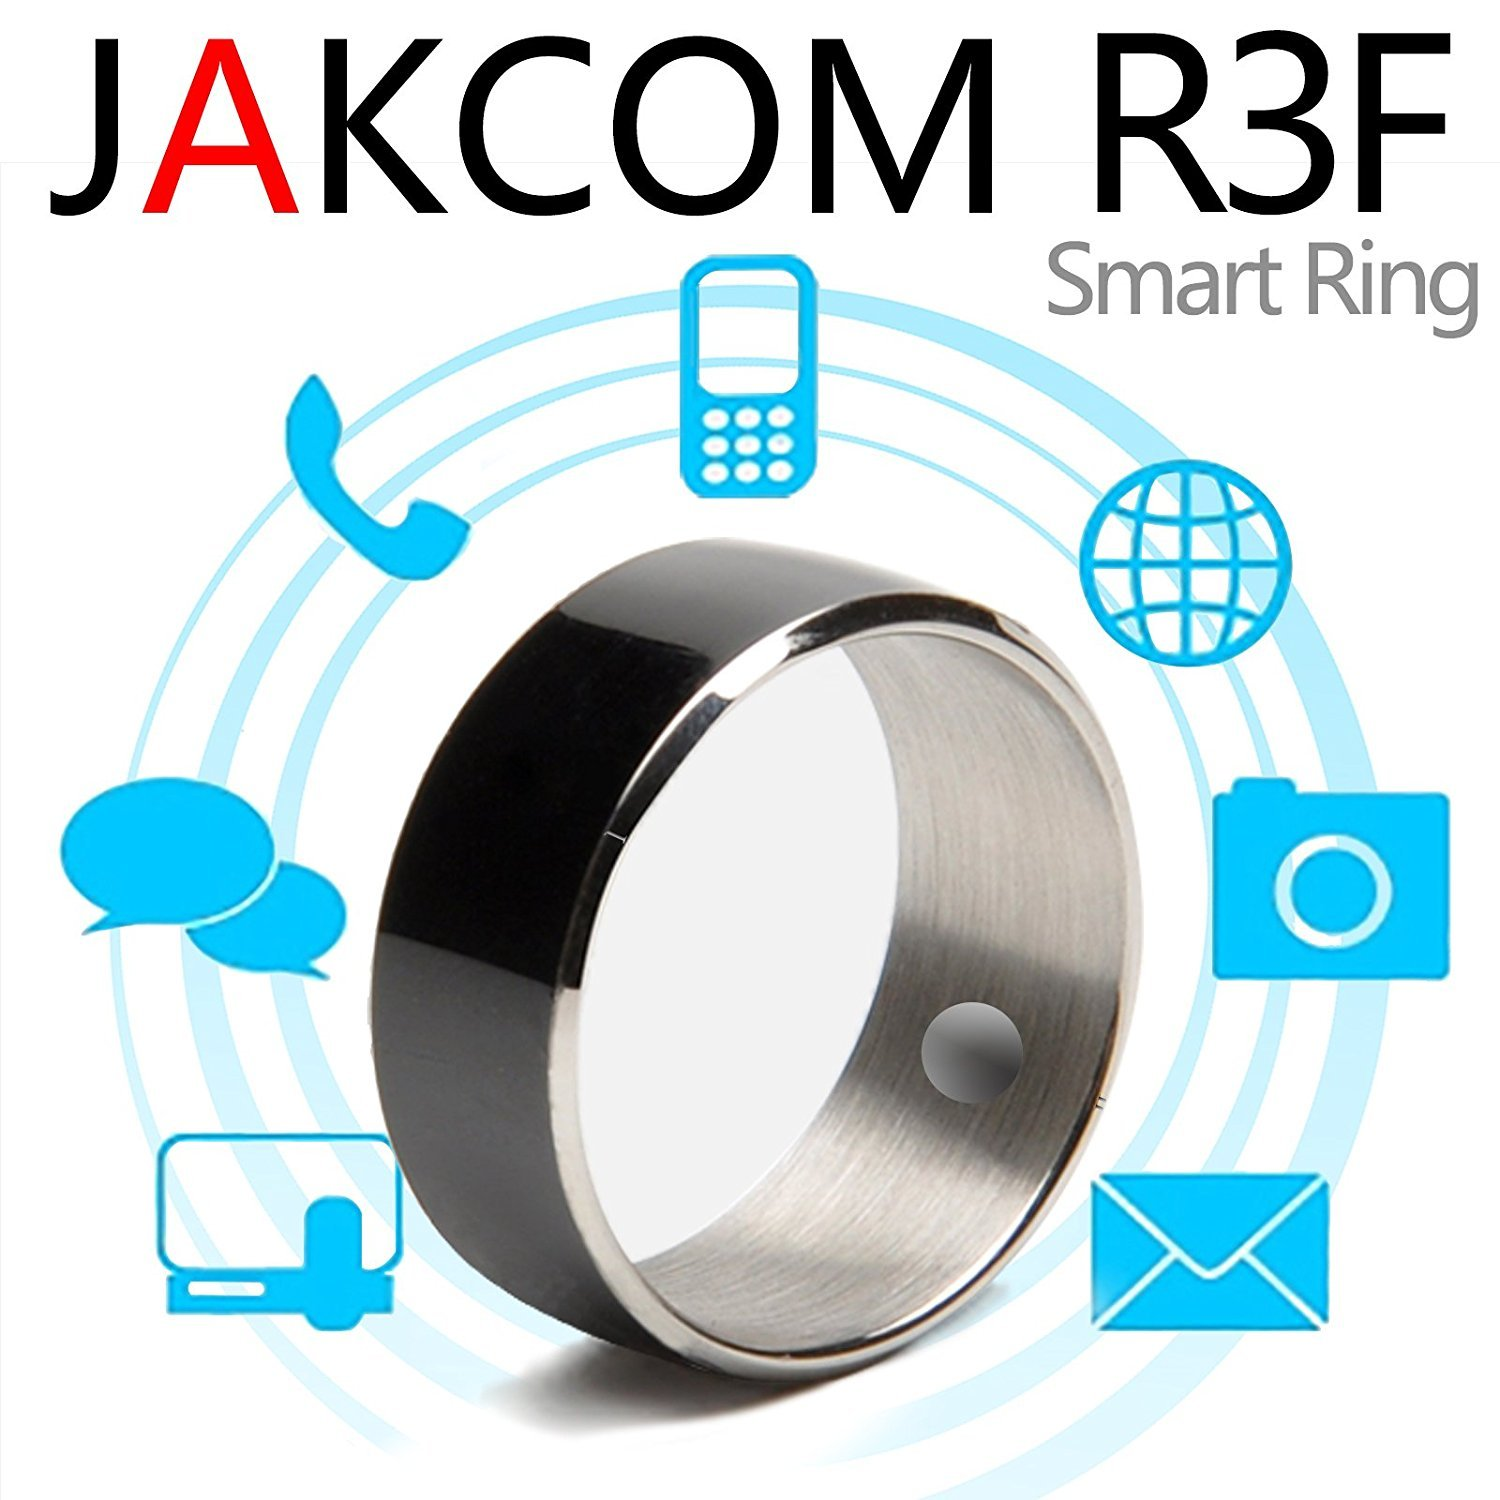 Jakcom R3F Smart Ring NFC Ring Wearable Technology Smart Tags Size #9 by Jakcom